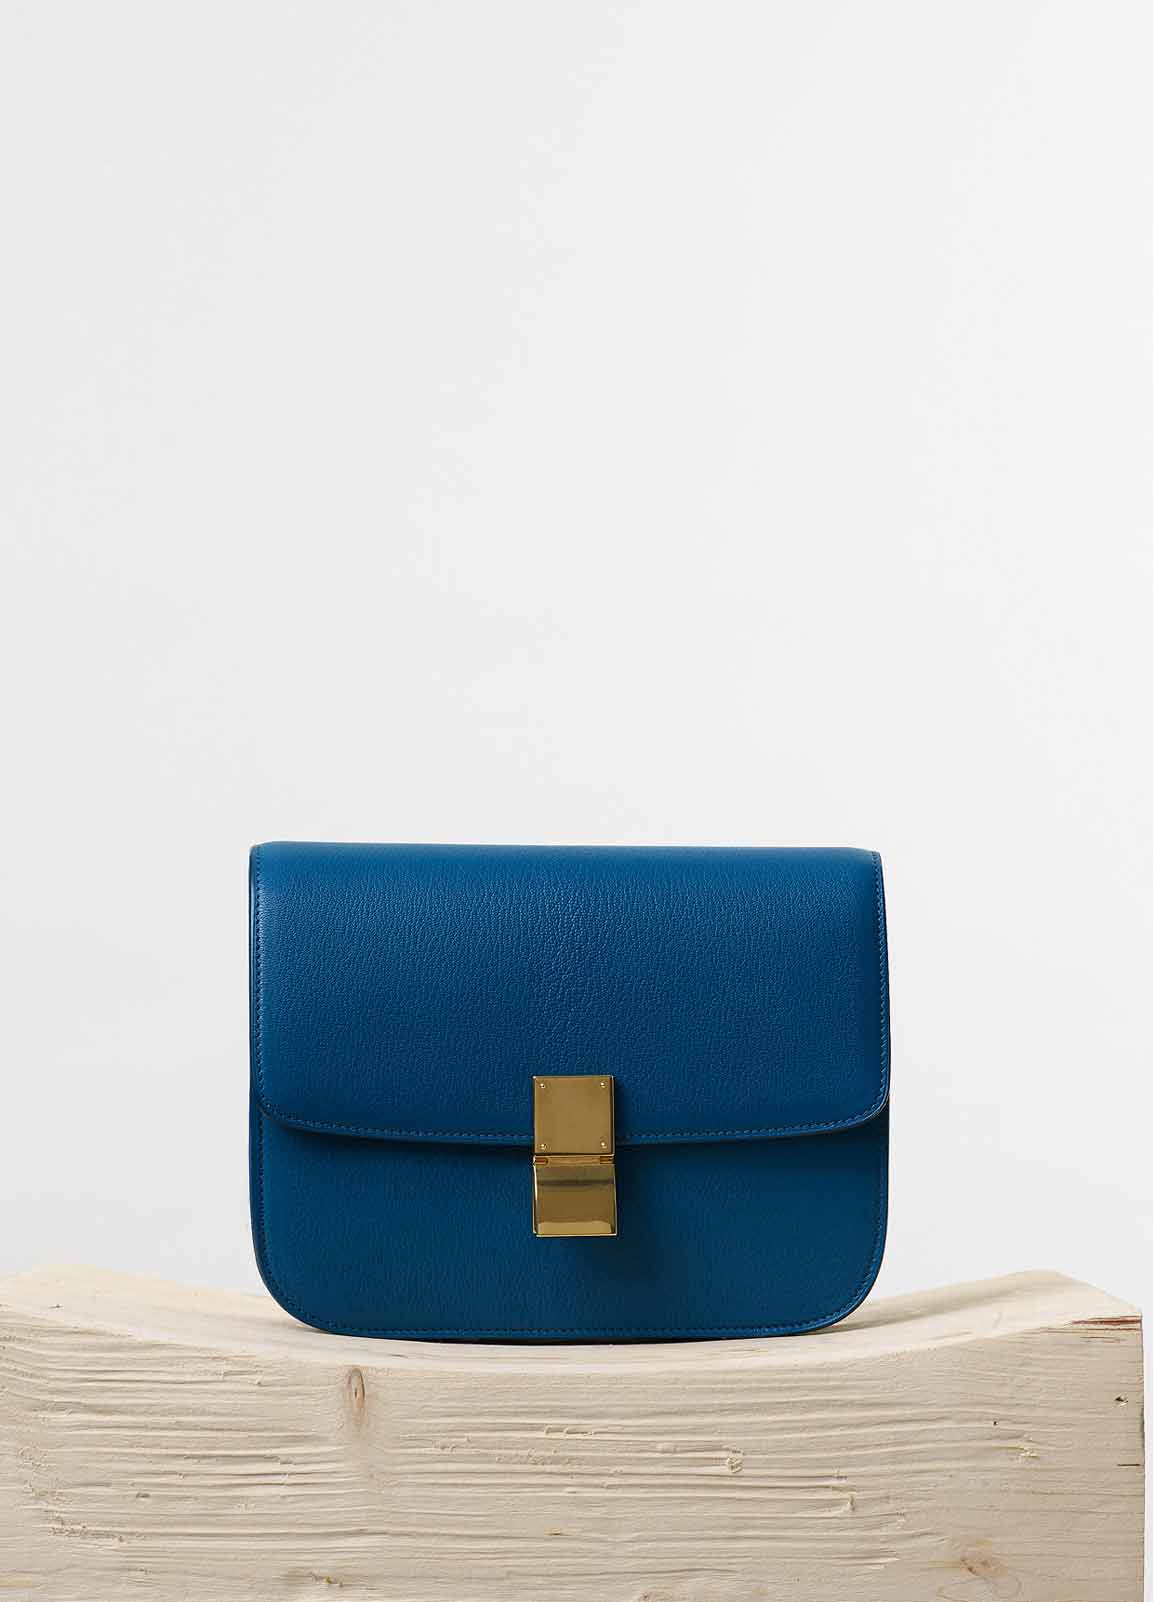 limited edition medium celine classic